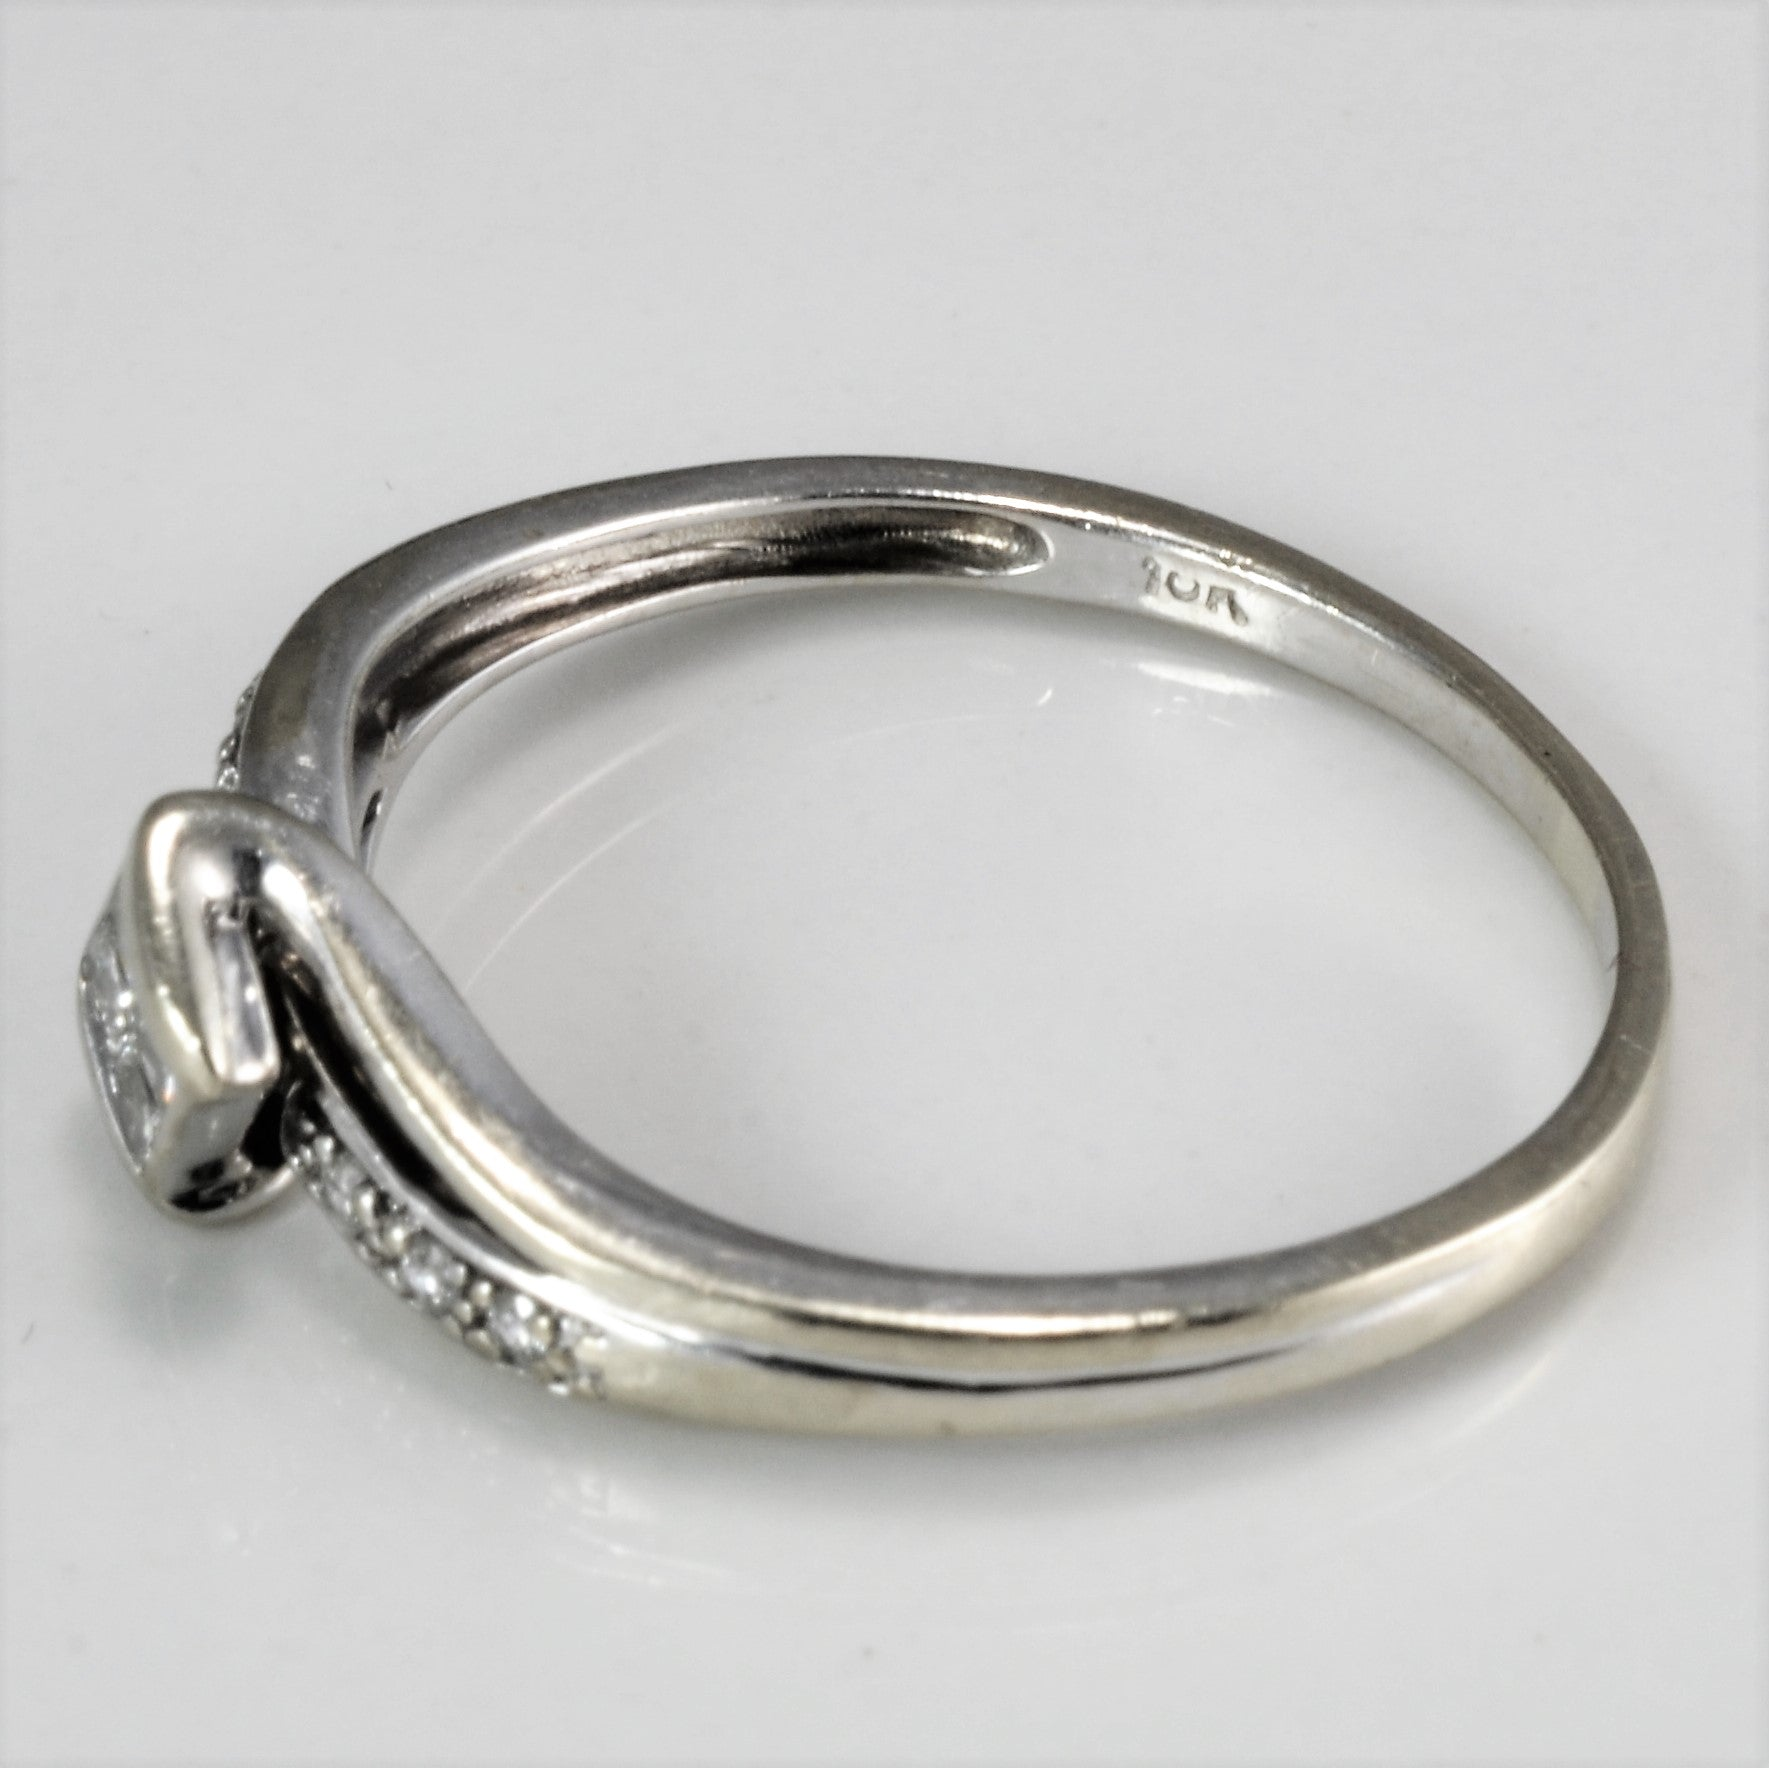 Bypass Diamond Ring | 0.16 ctw, SZ 7.25 |